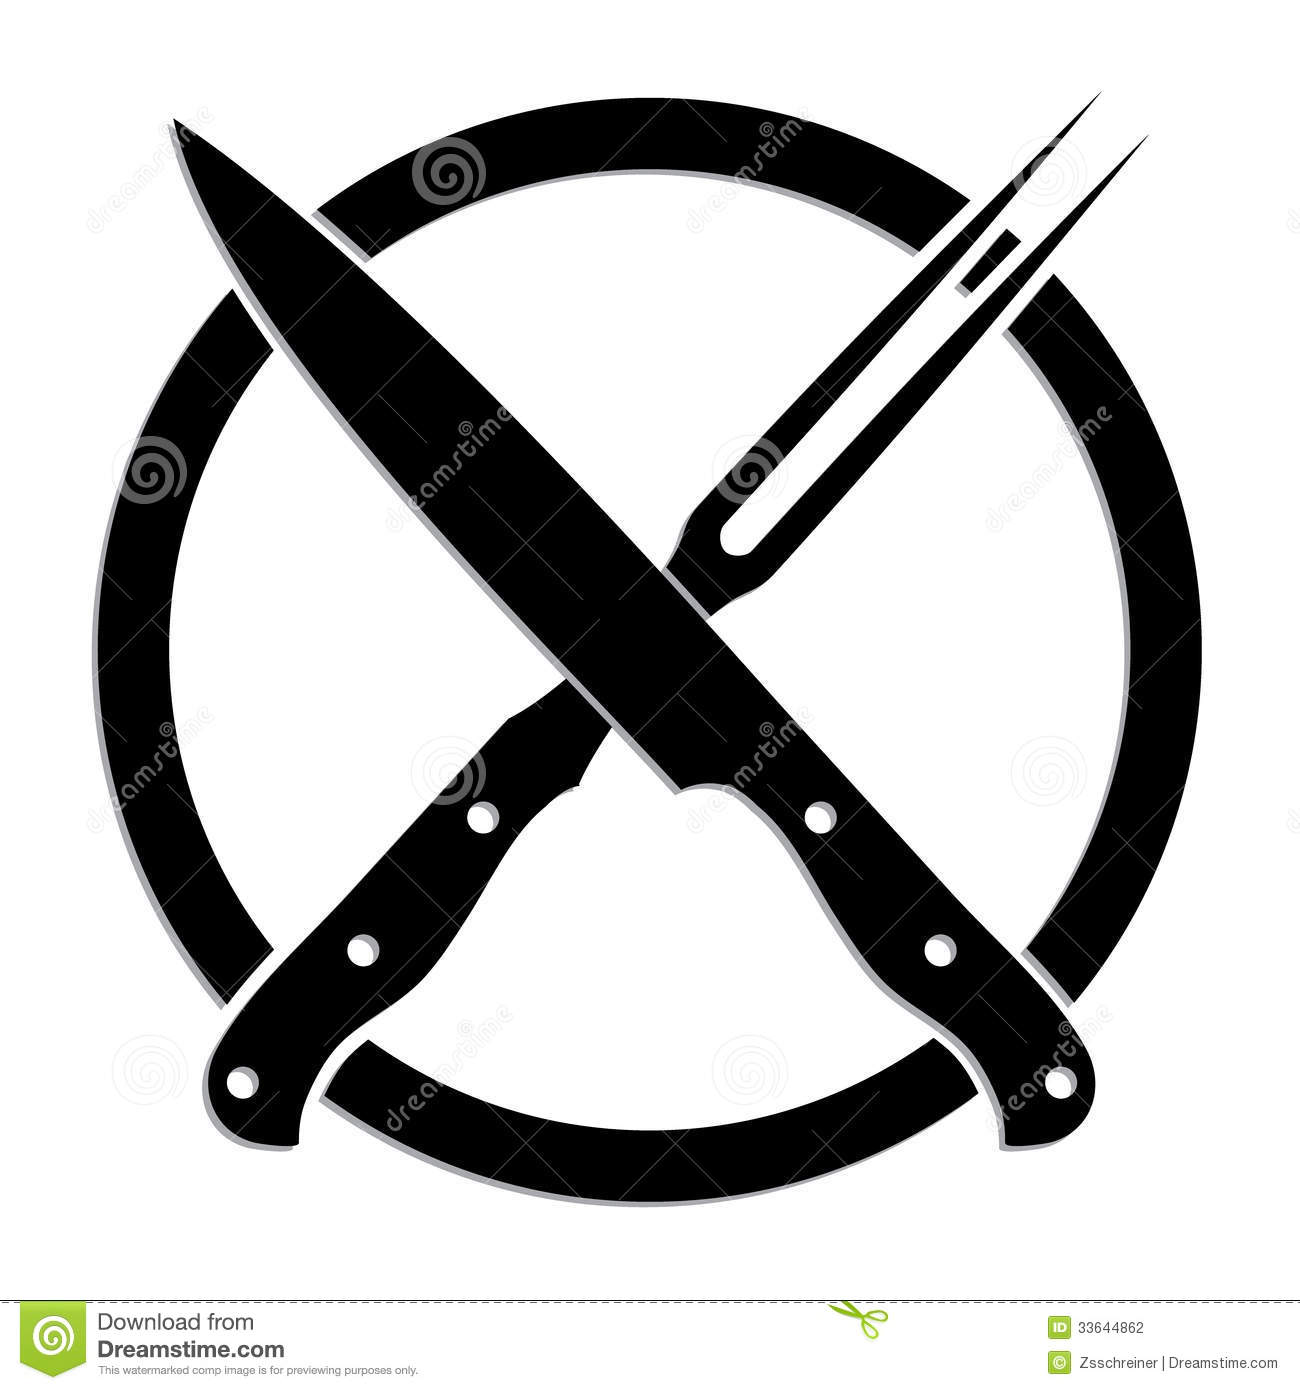 Crossed Chef Knives Clipart - Clipart Kid